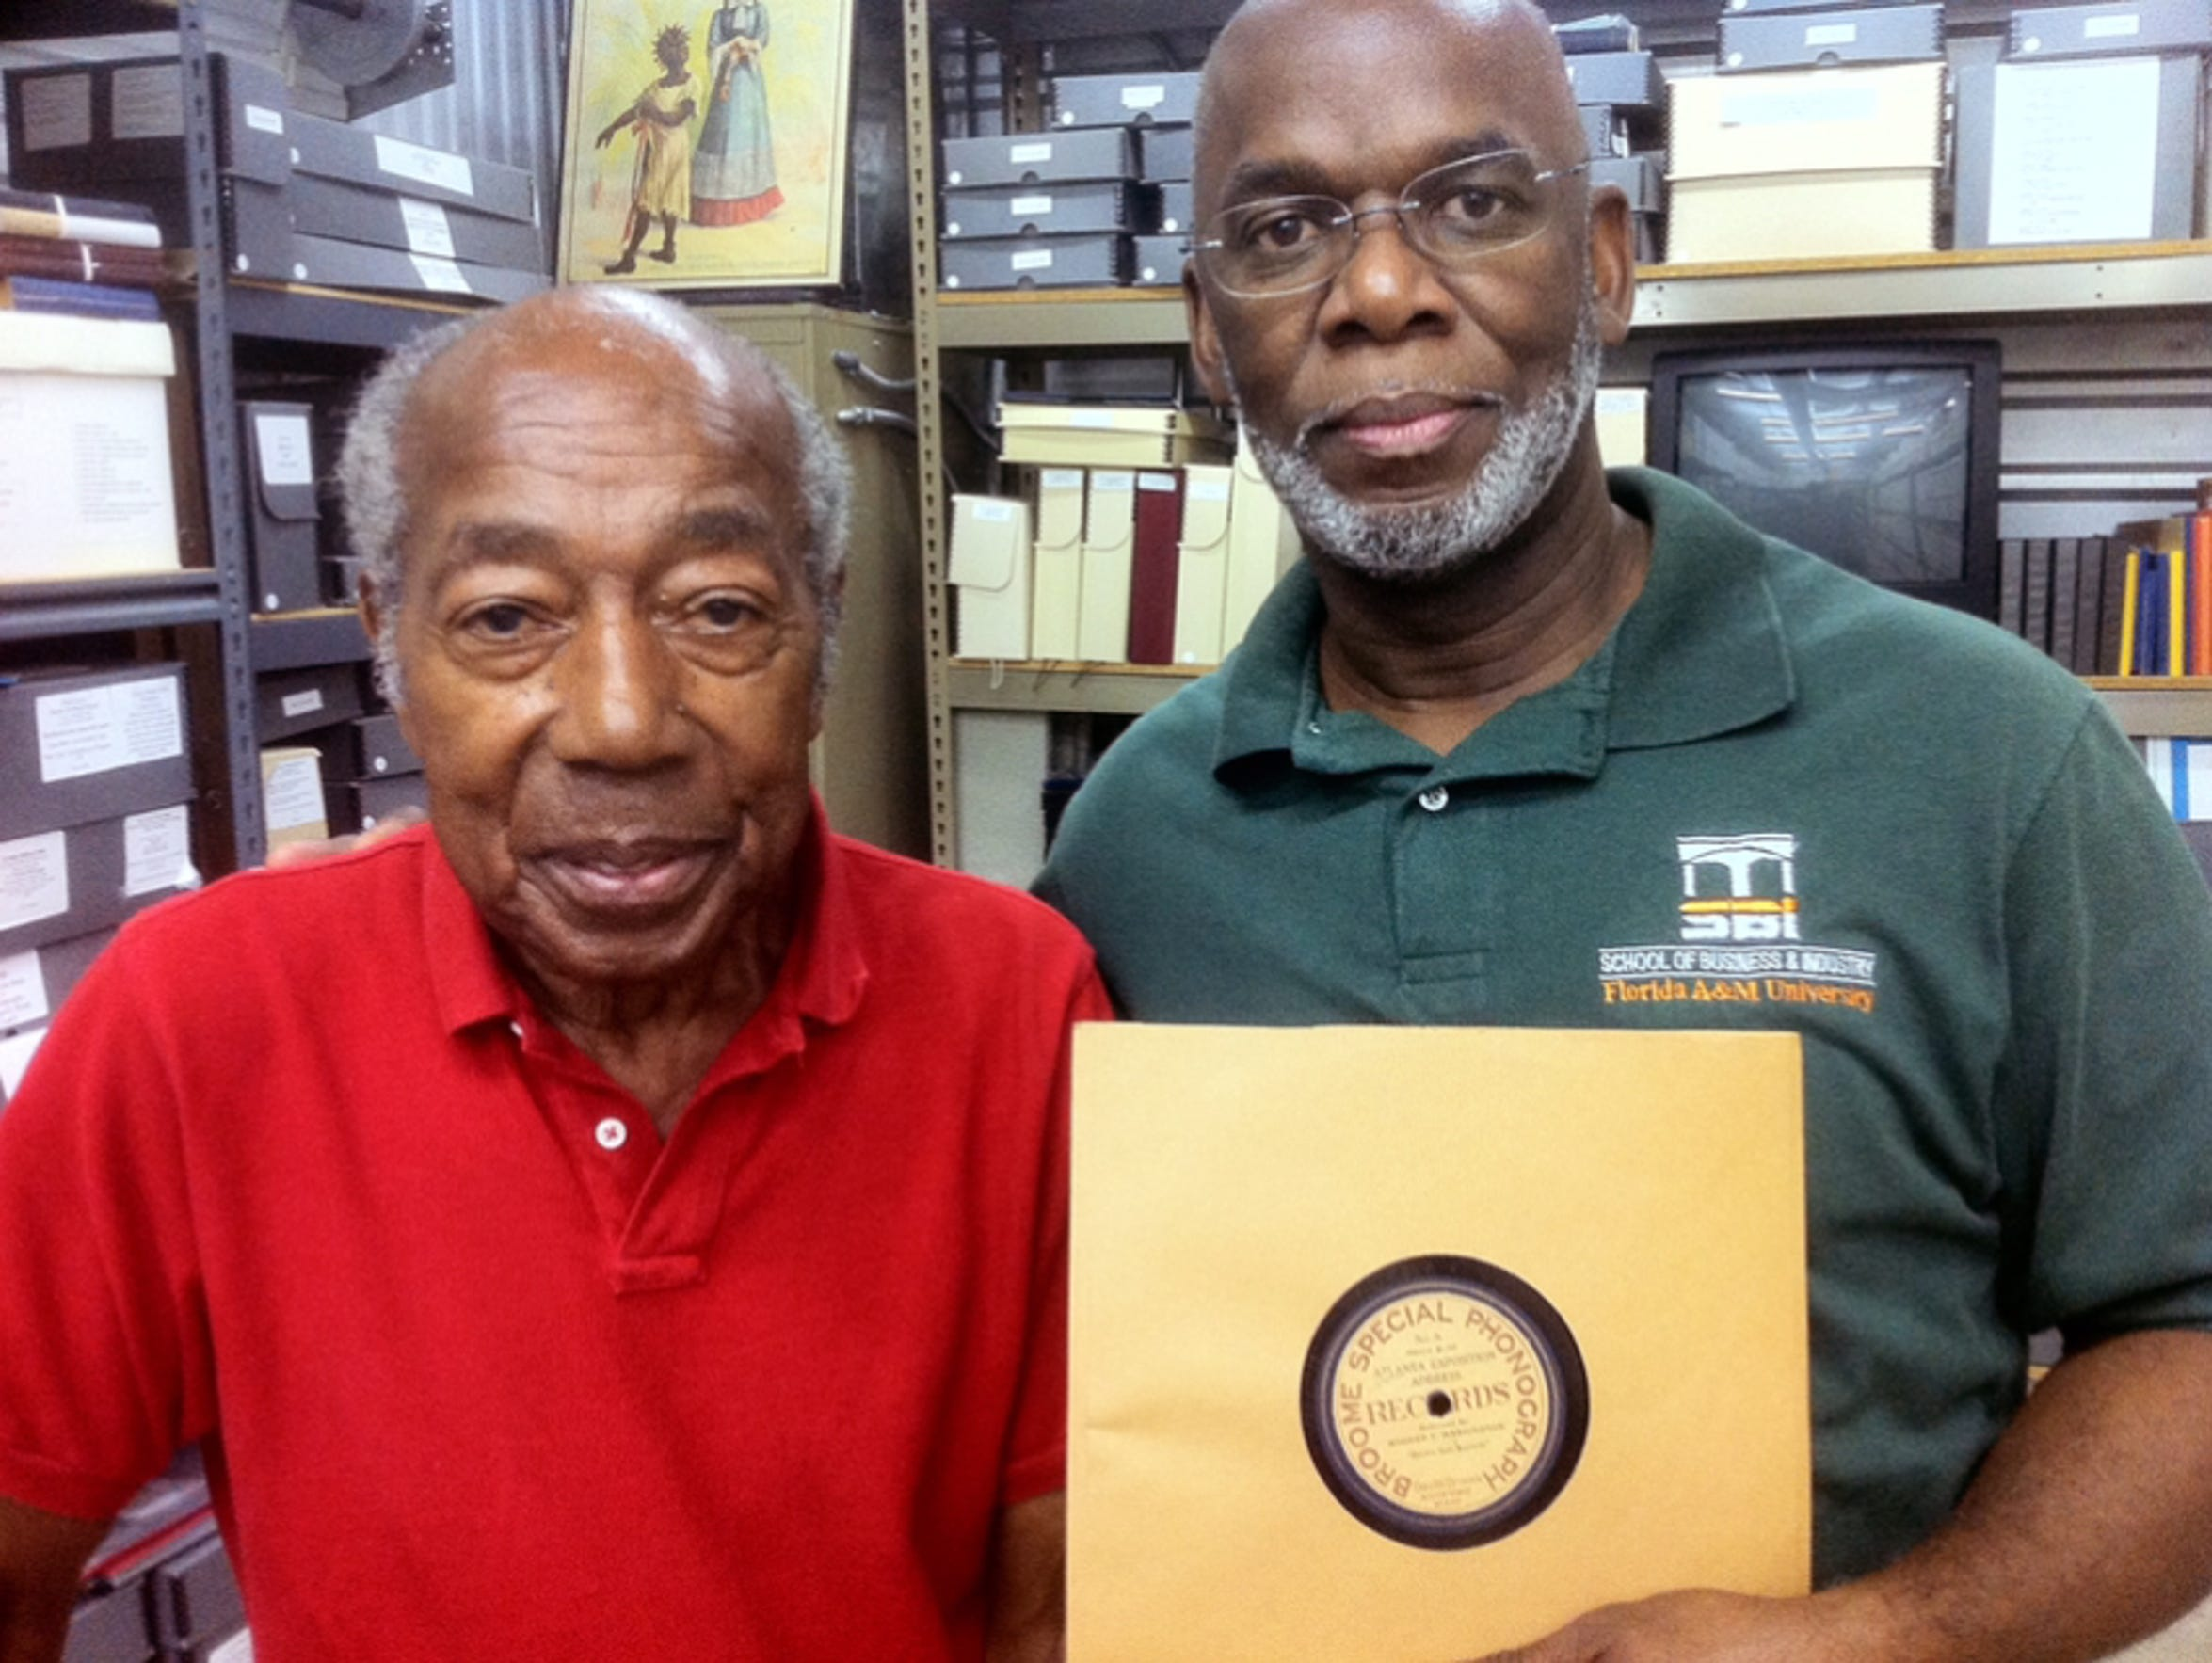 Clinton Byrd poses with Nathaniel 'Magnificent' Montague